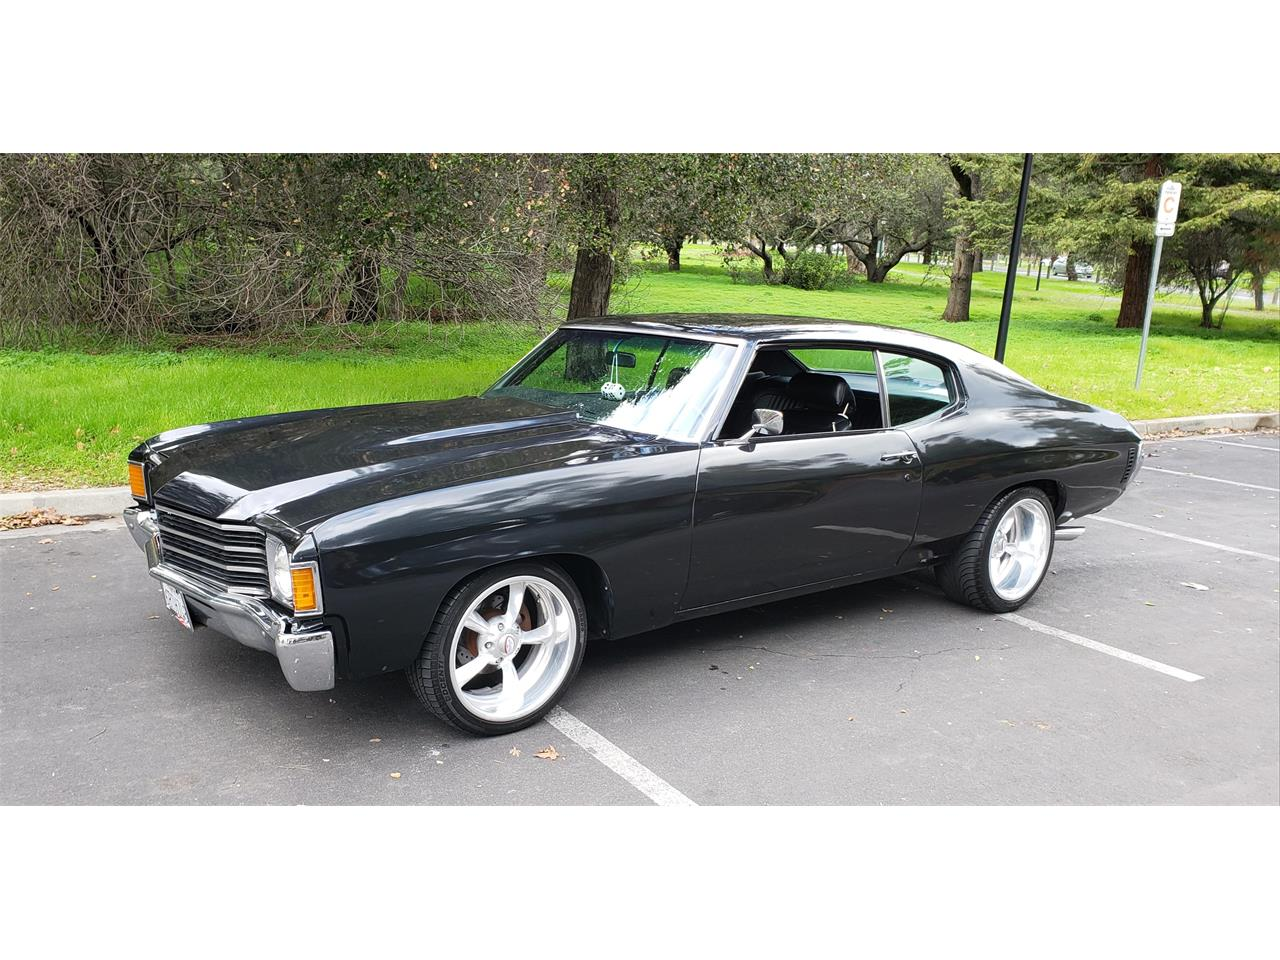 Large Picture of '72 Chevelle Malibu - $25,000.00 - PP62